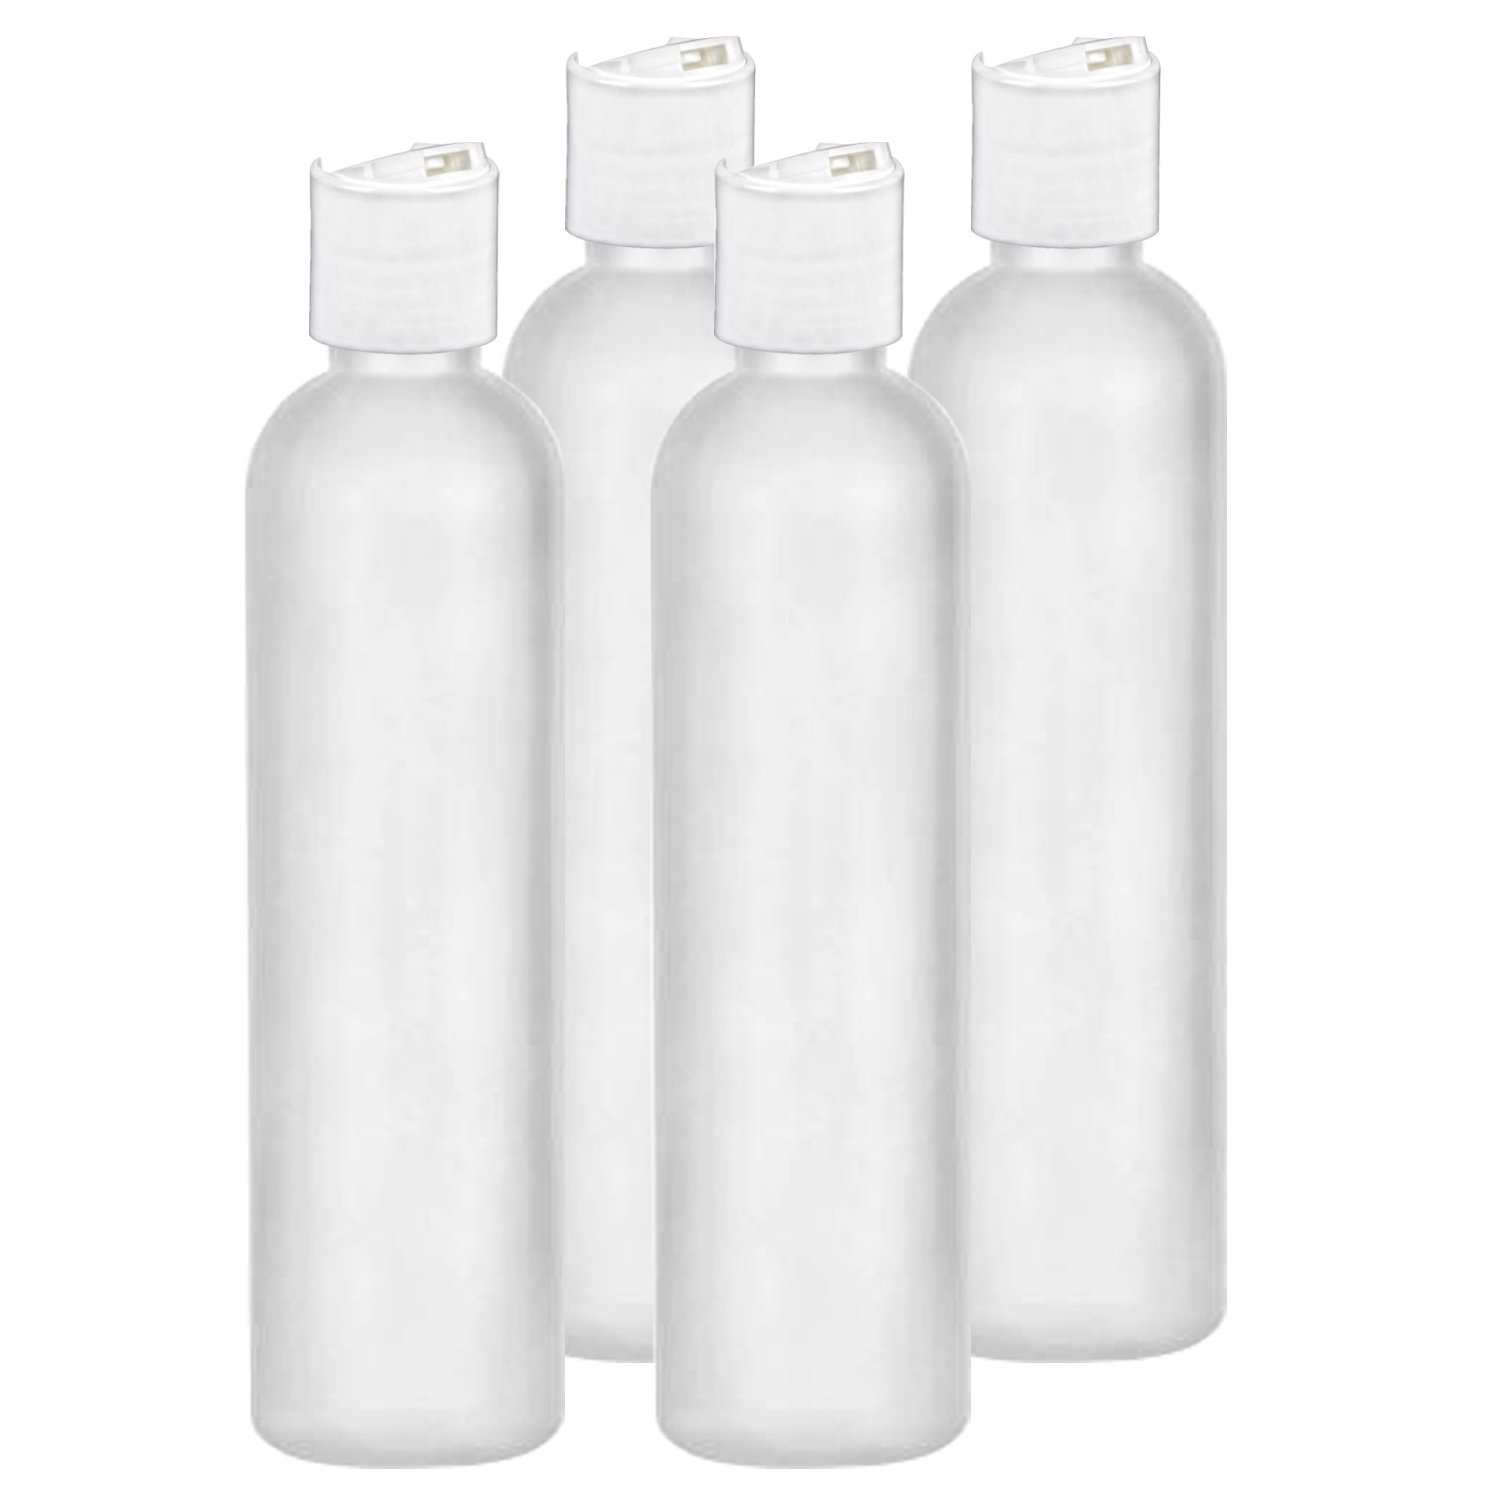 MoYo Natural Labs 4 oz Travel Bottles, Empty Travel Containers with Disc Caps, BPA Free HDPE Plastic Squeezable Toiletry/Cosmetic Bottles (Neck 24-410) (Pack of 4, HDPE Translucent White)